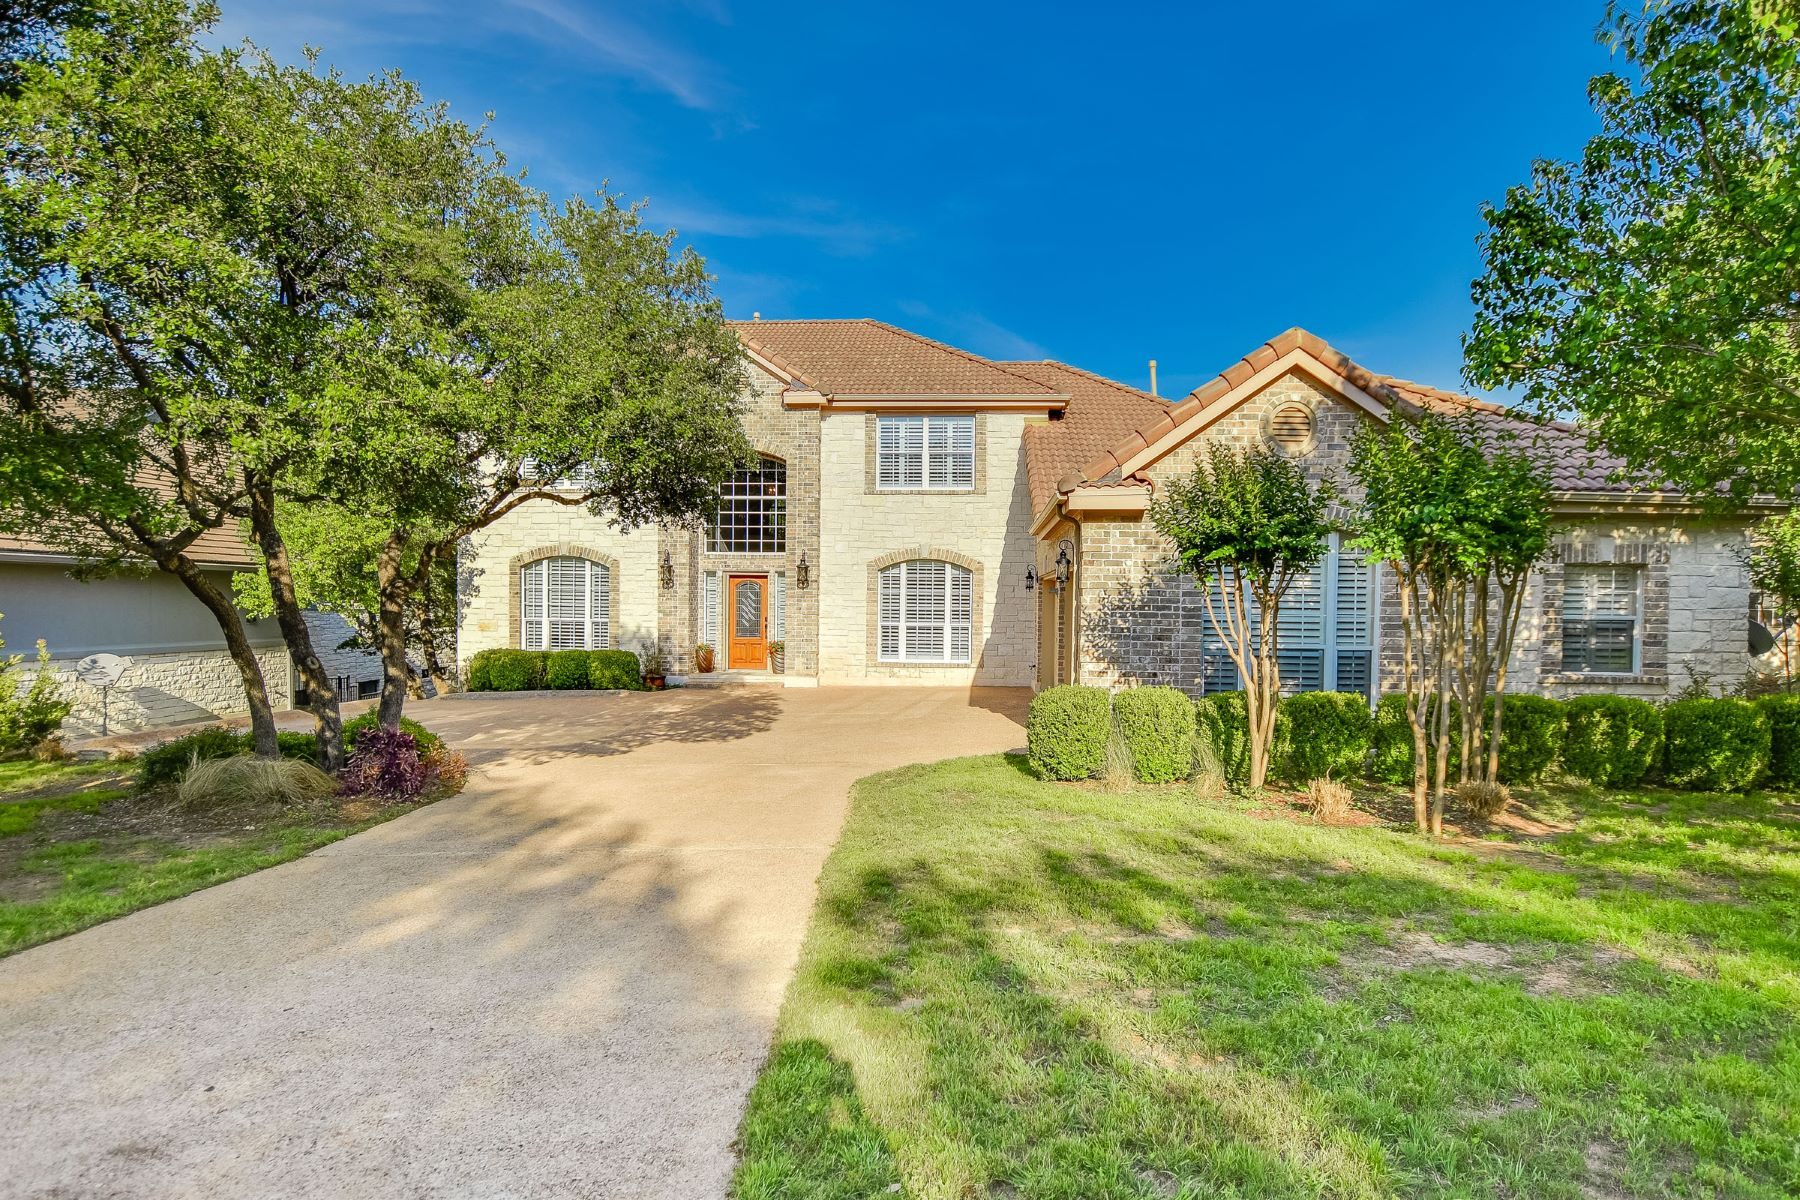 Casa Unifamiliar por un Venta en Bright, Open and Well Maintained 406 Luna Vista The Hills, Texas 78738 Estados Unidos